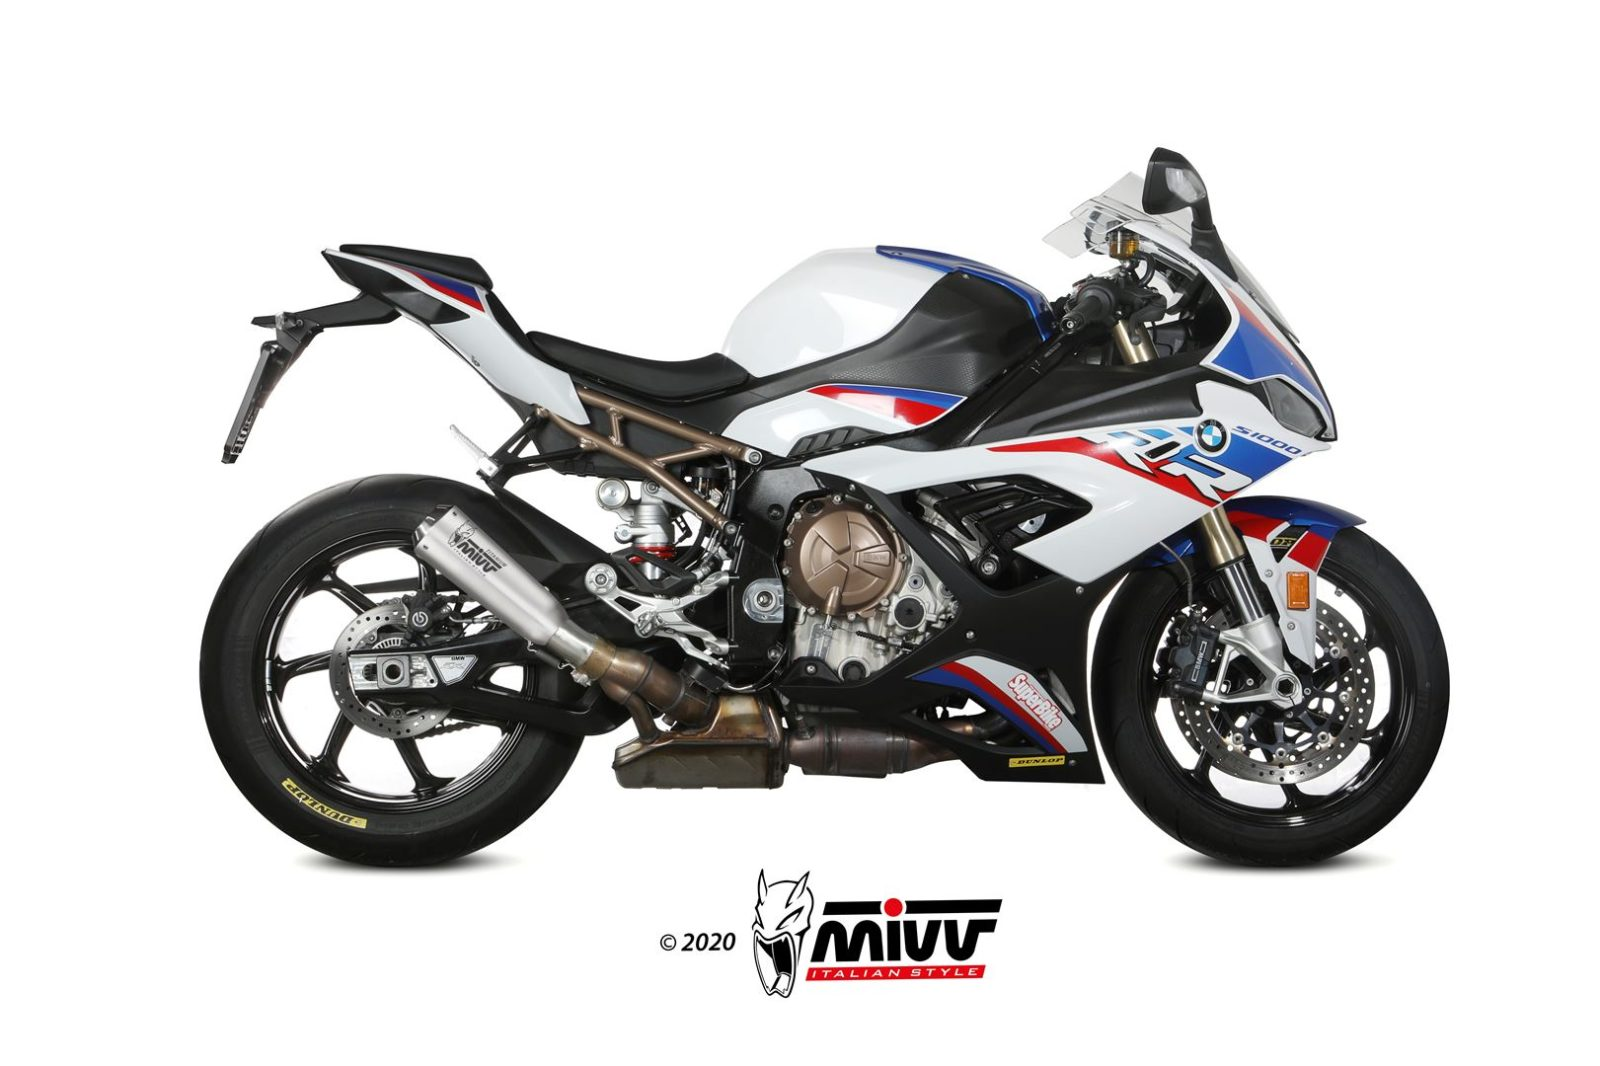 BMW_S1000RR_2020_73B036LC4T_01